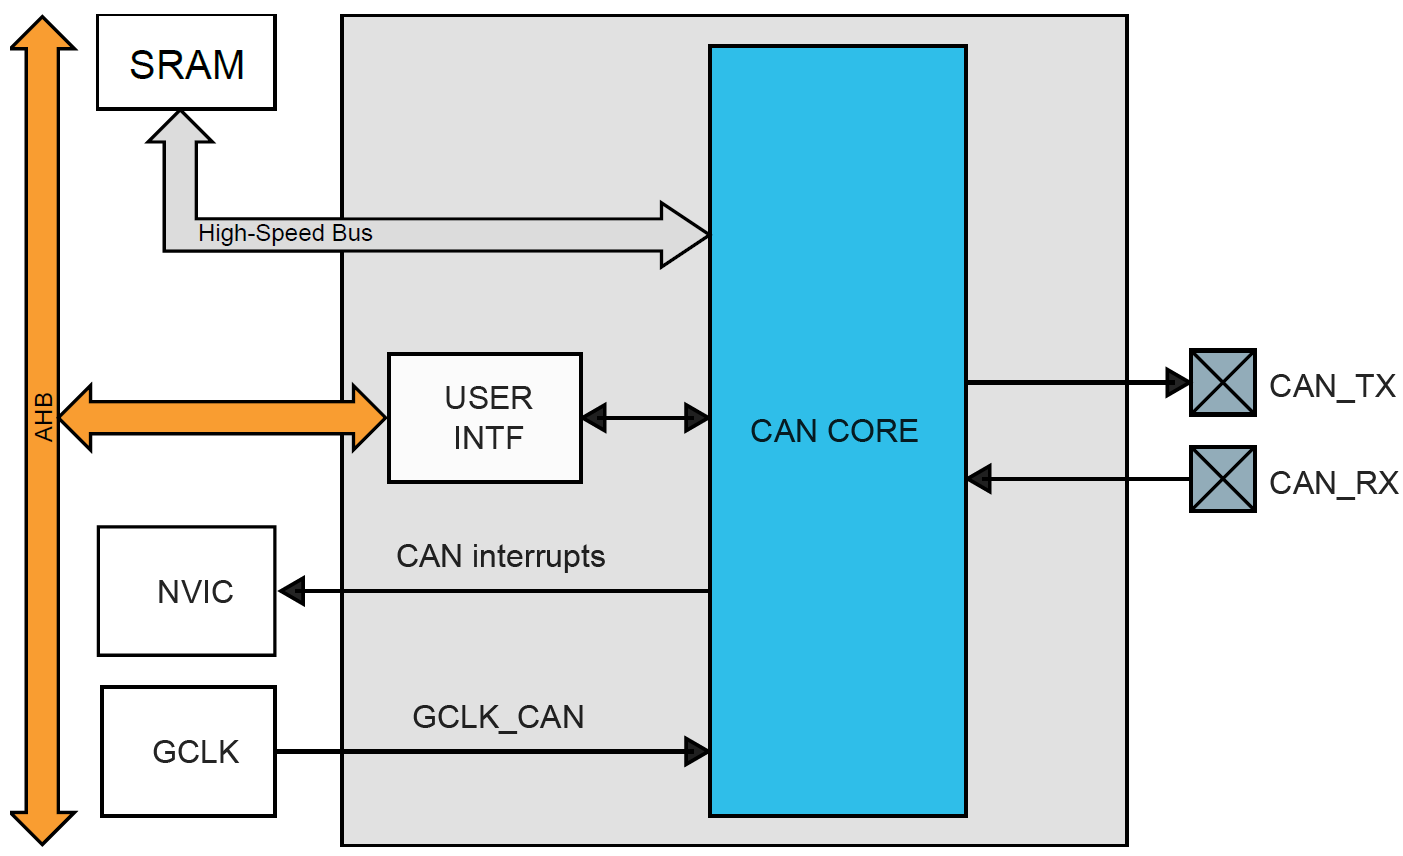 samc21-can-block-diagram.png